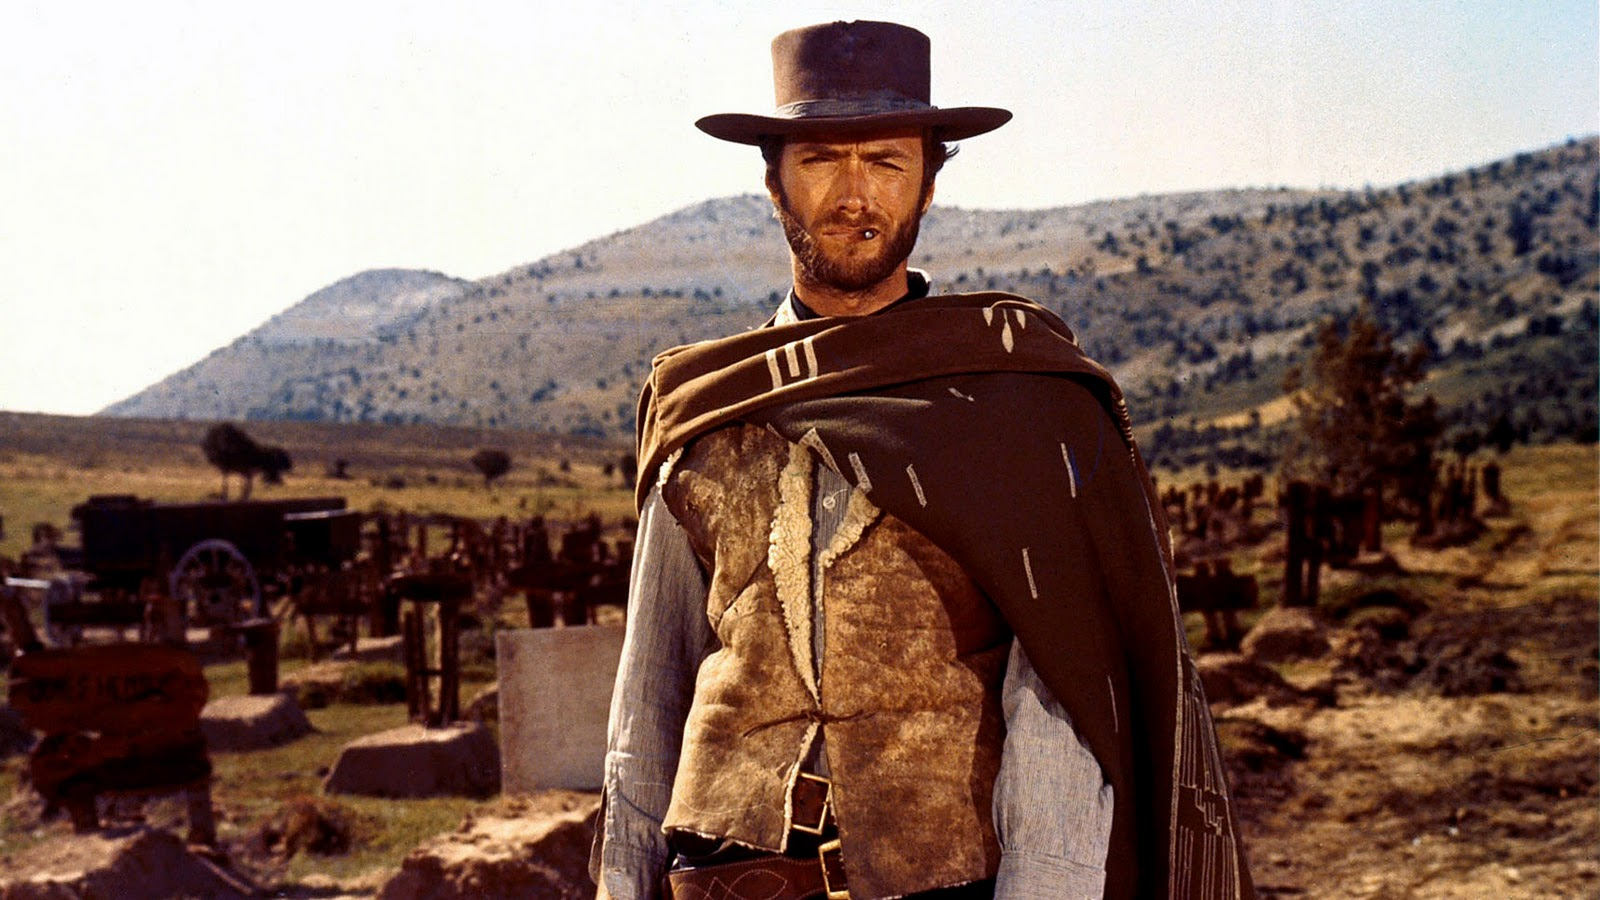 http://3.bp.blogspot.com/-WR6ljuNz25g/TnZntwfYb7I/AAAAAAAADH4/Ck_dYBqzCDk/s1600/Clint_Eastwood_The_Good_The_Bad_The_Ugly_HD_Wallpaper_Vvallpaper.Net.jpg